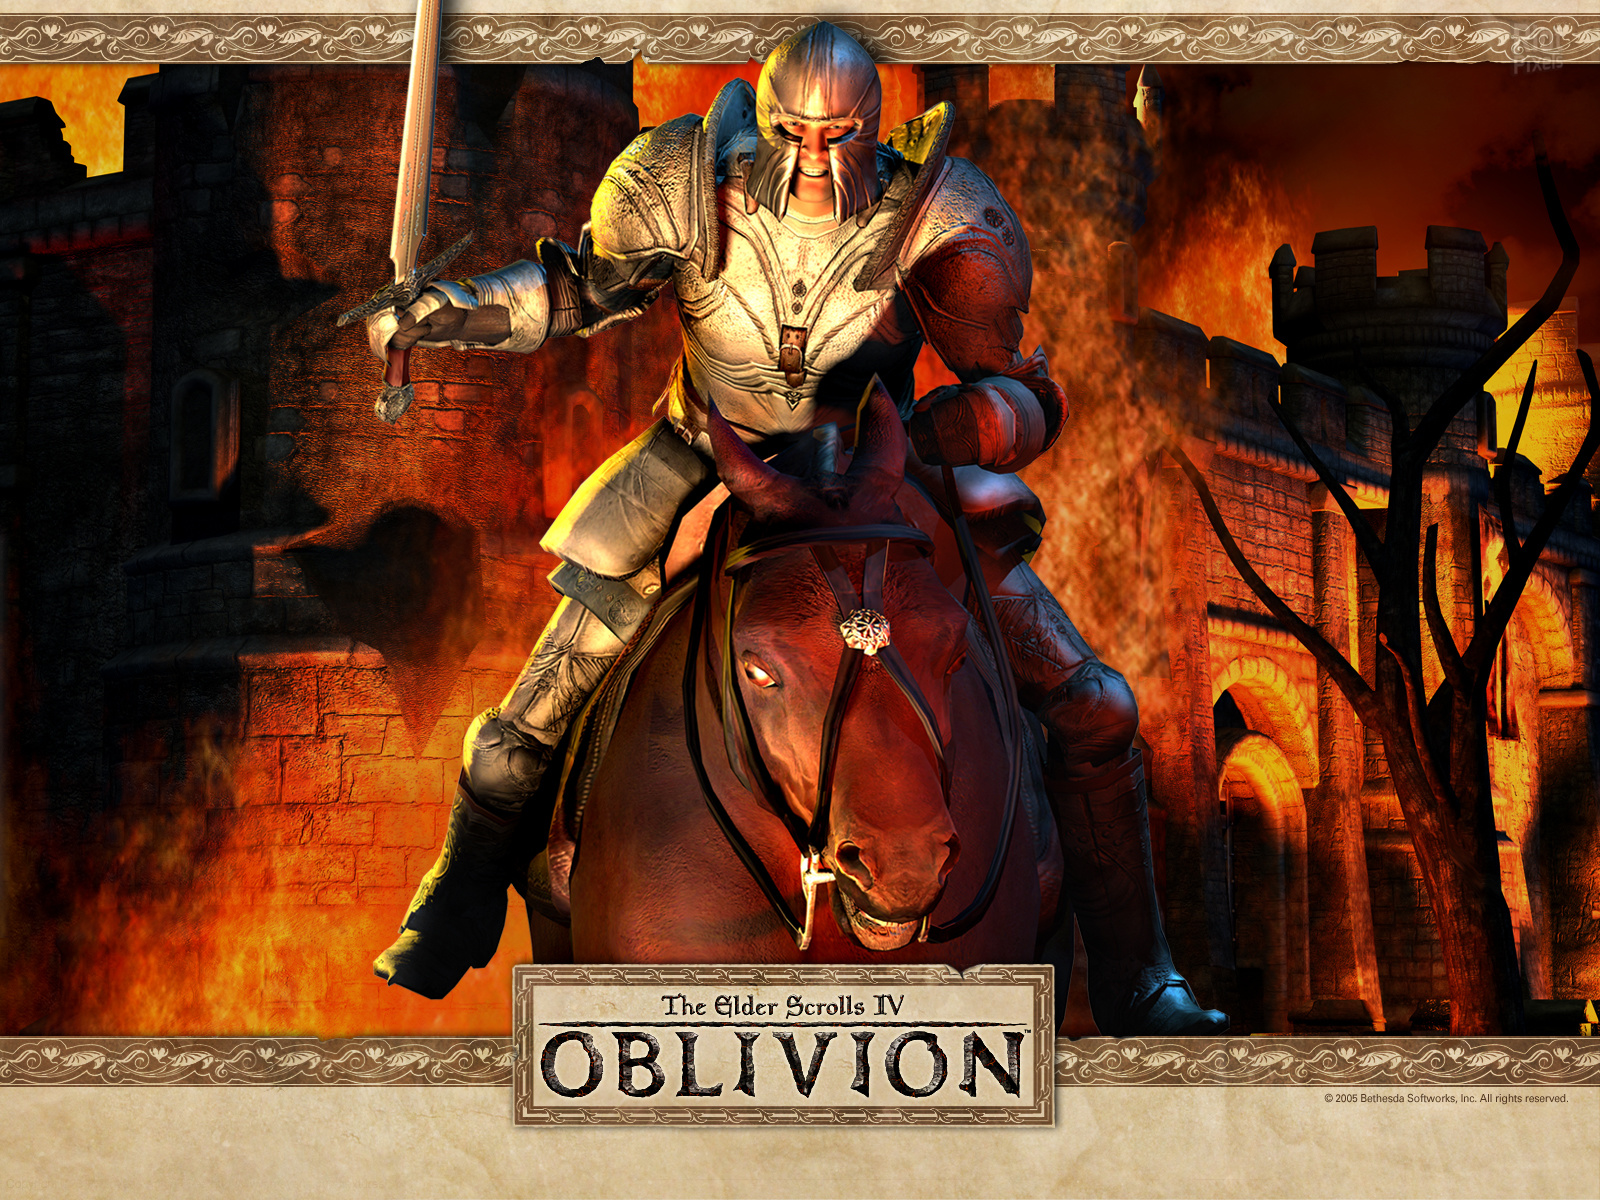 How to have sex on oblivion hentay films